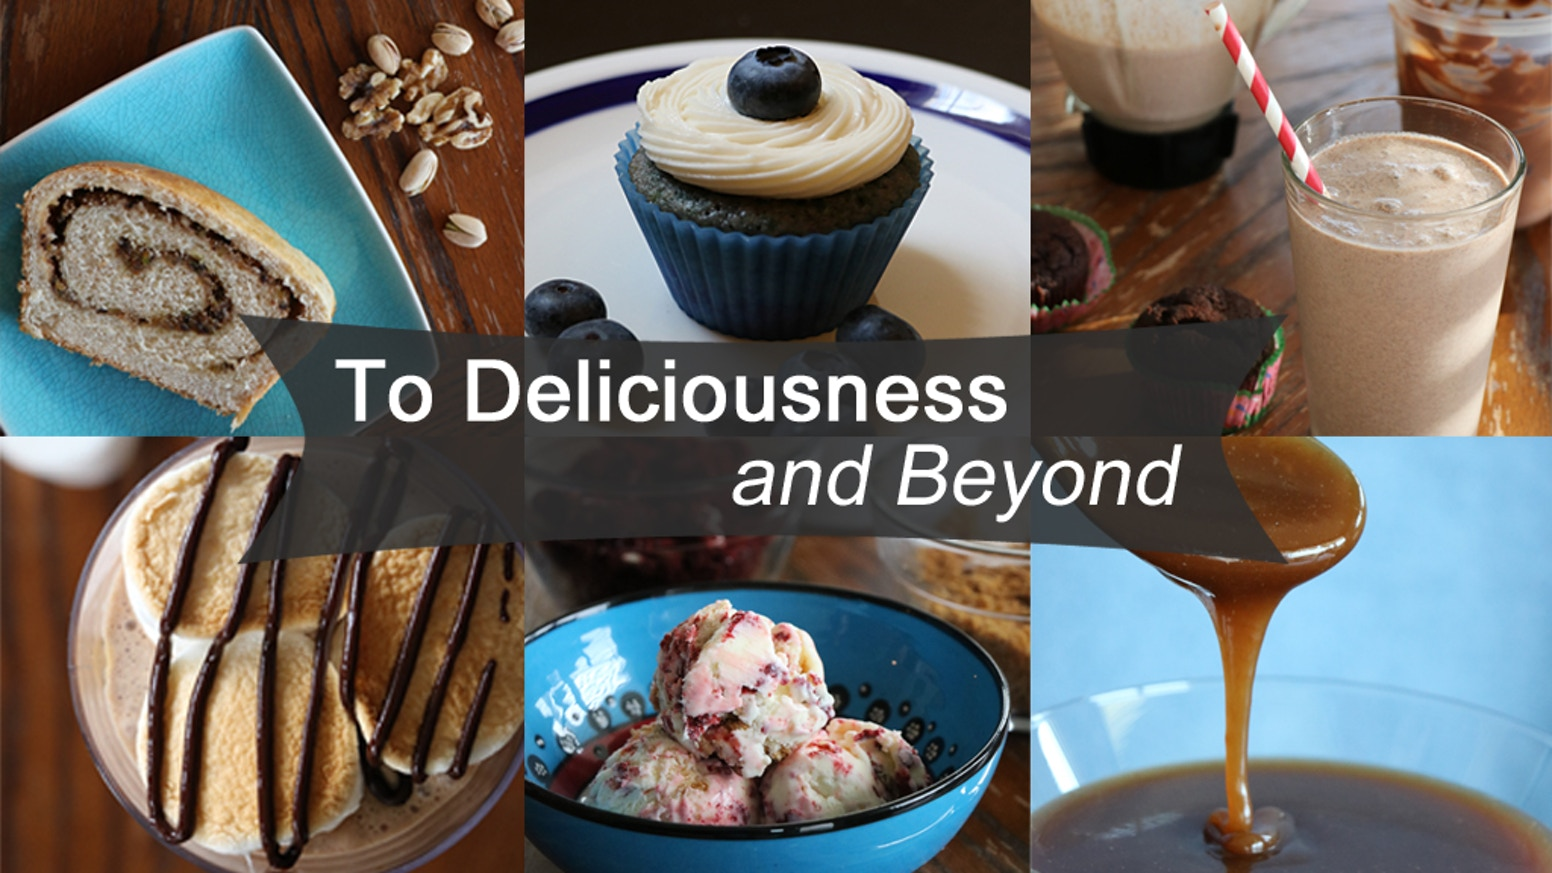 A cookbook filled with creative sweets and baked goods inspired by our travels around the world and family favorites.